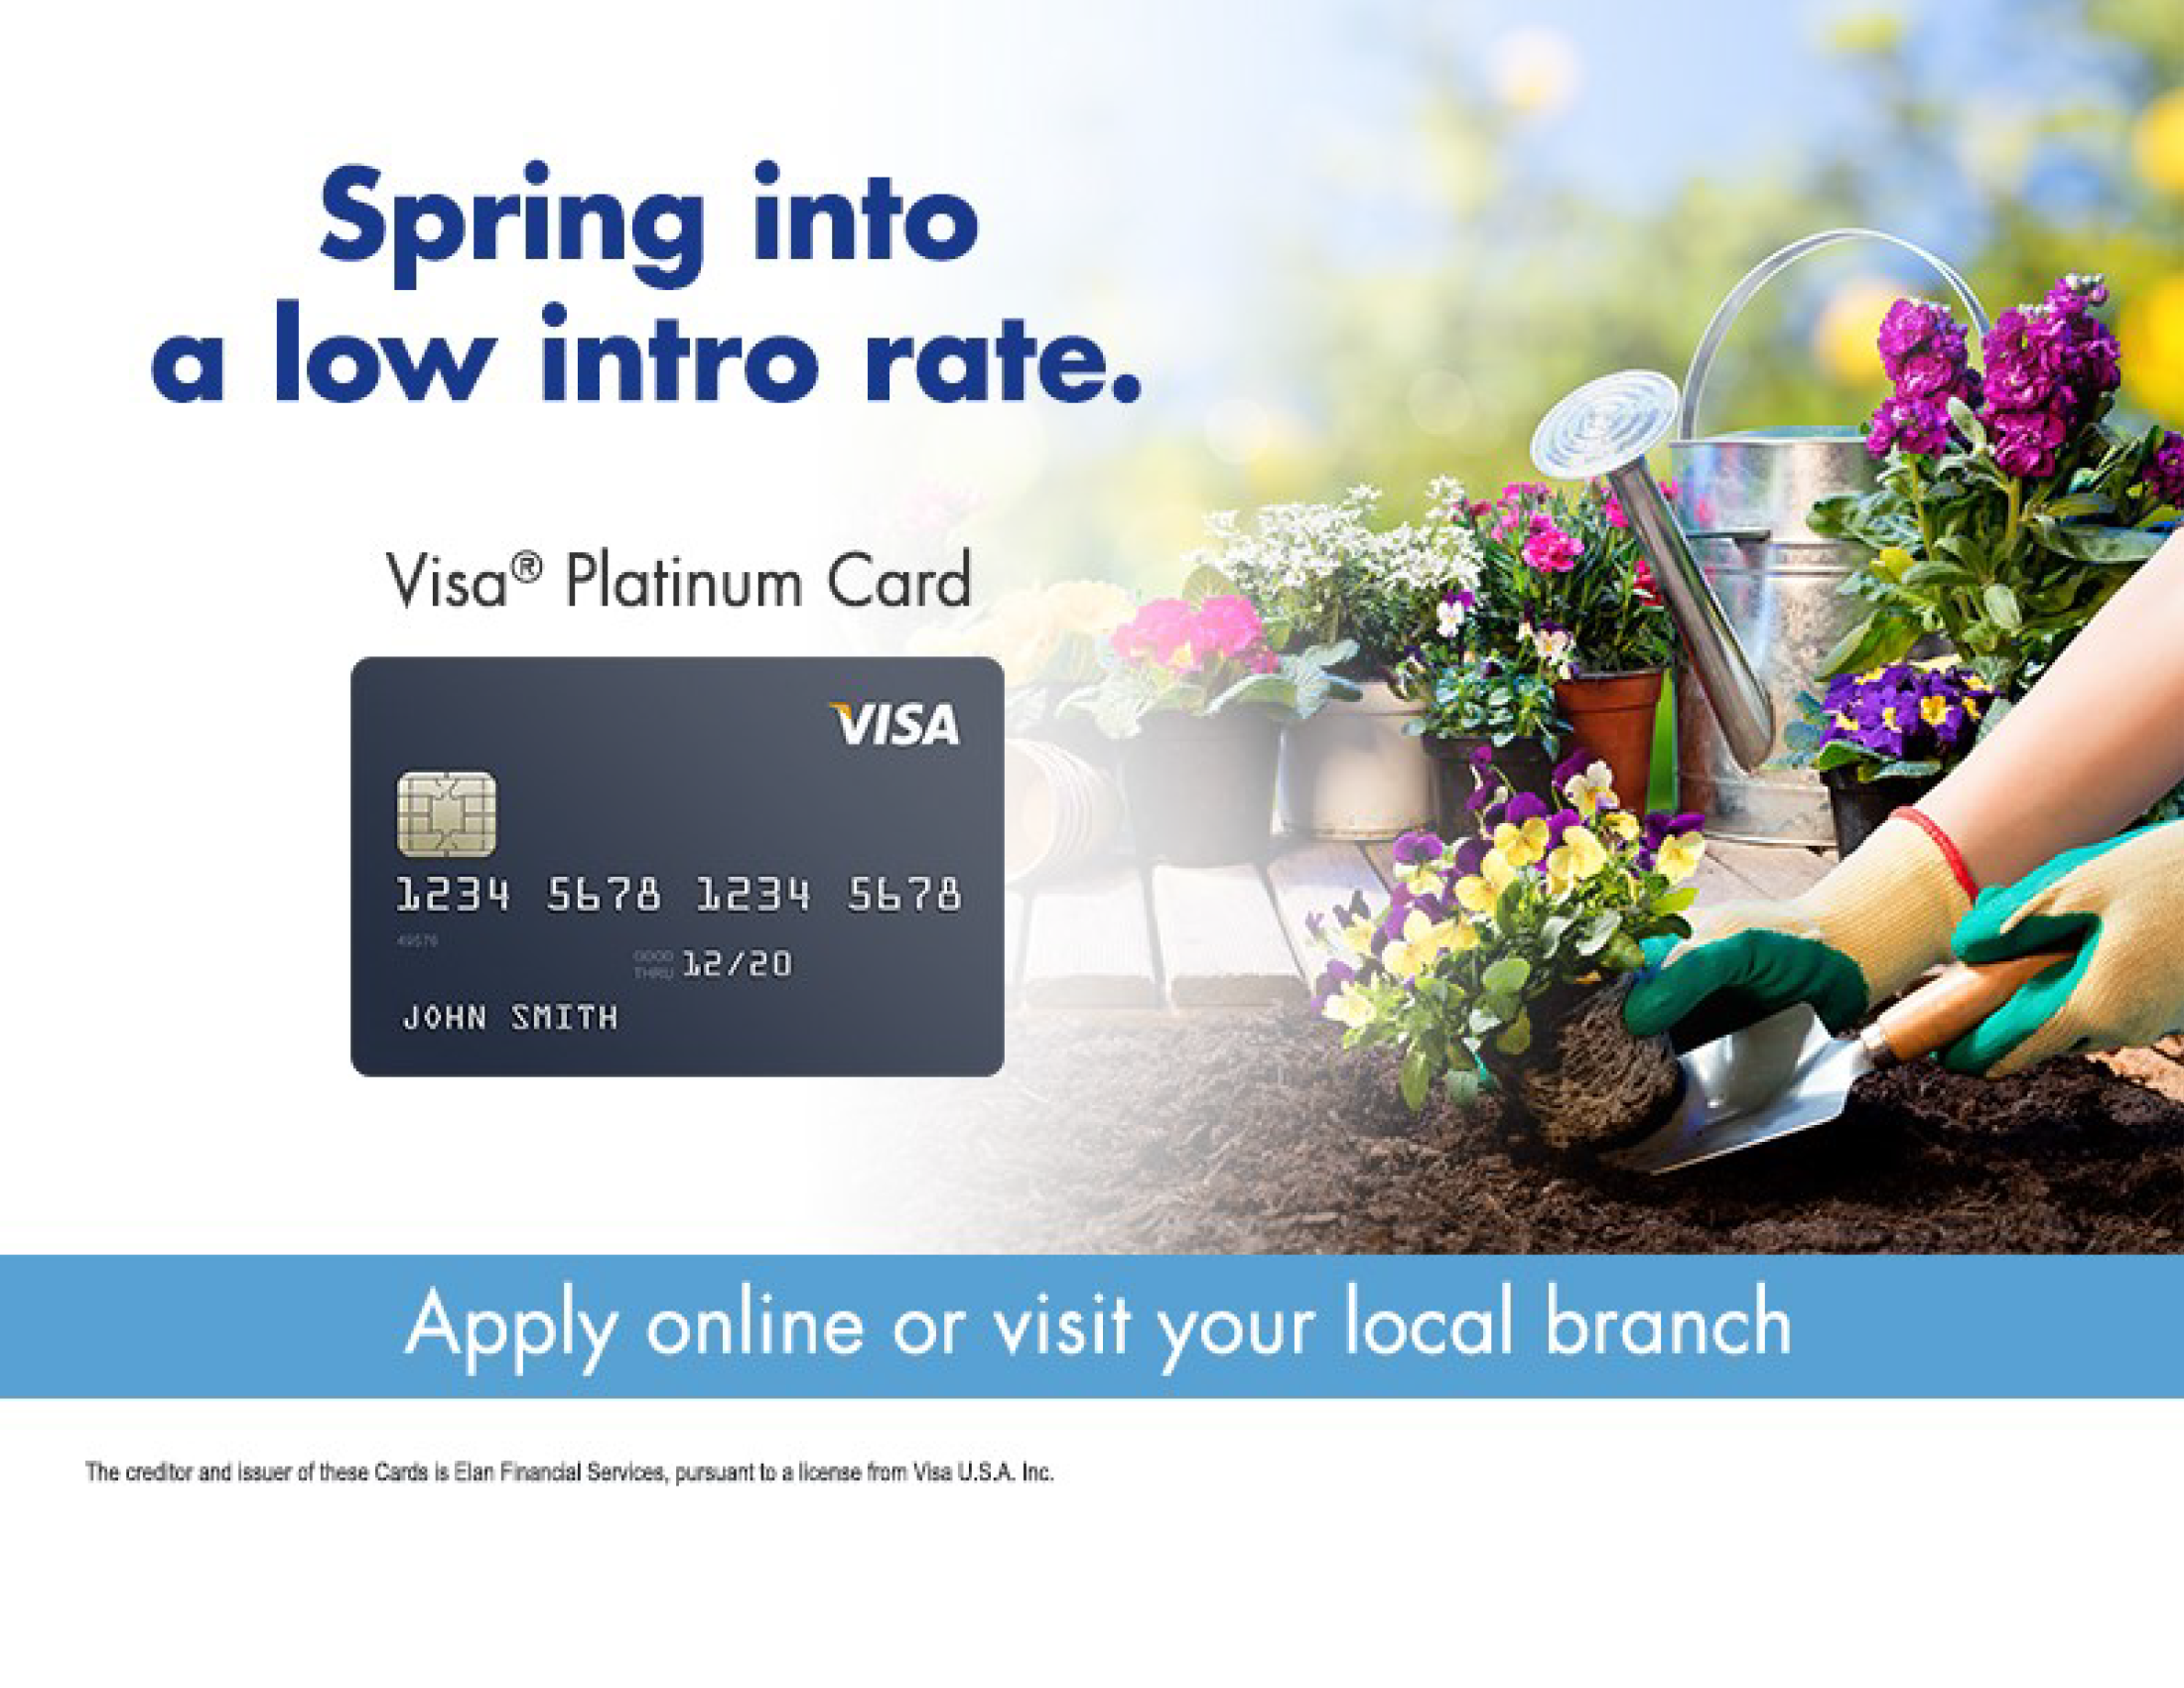 VISA platinum card promotion